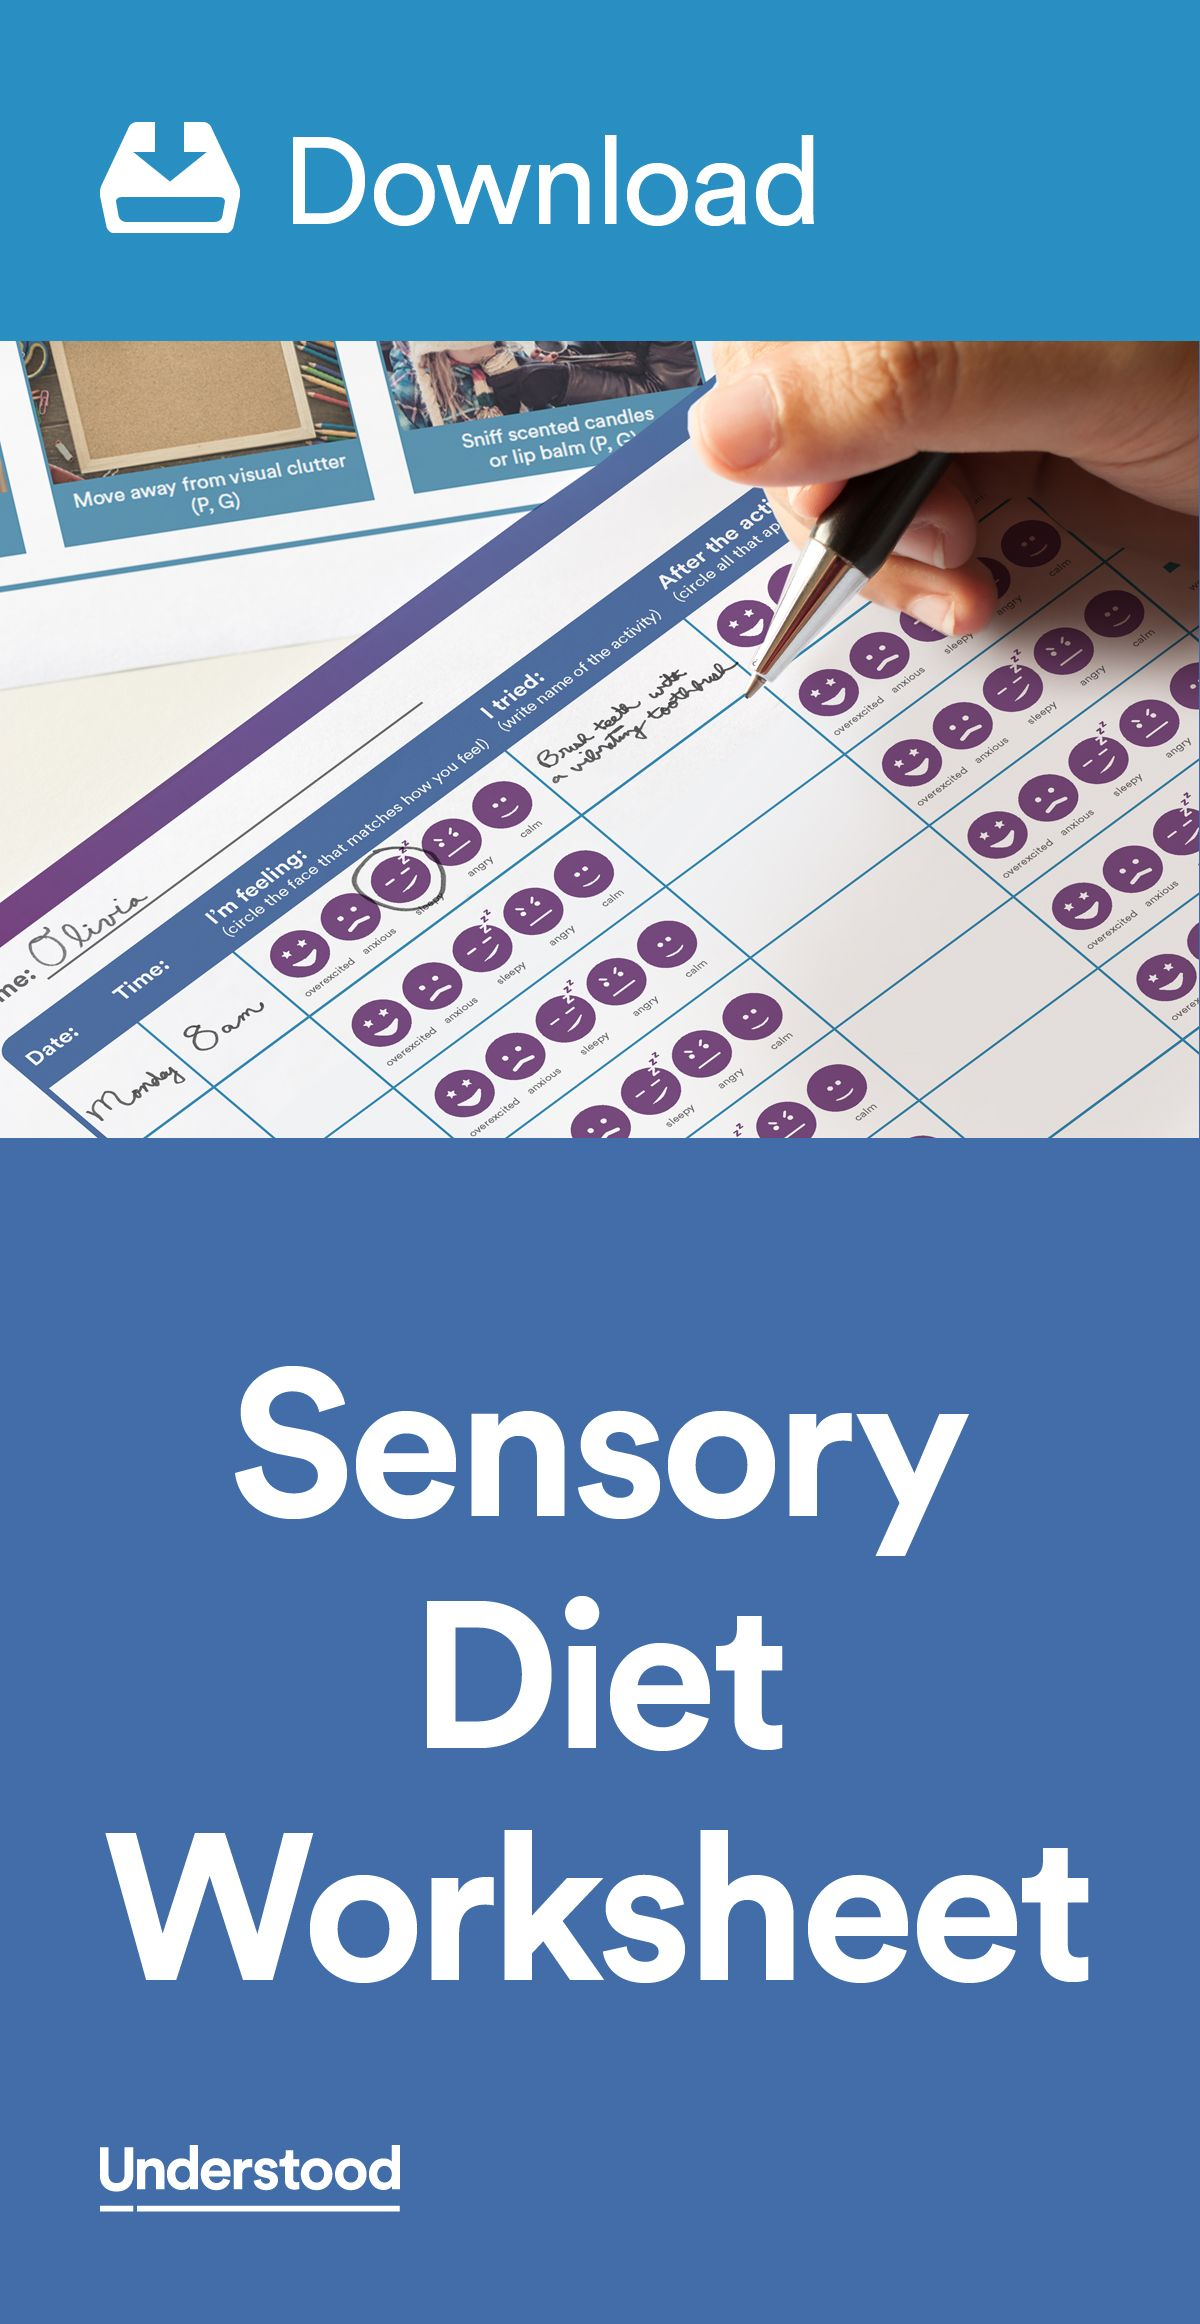 Download Sample Sensory Diet Pinterest Sensory Diet Worksheets